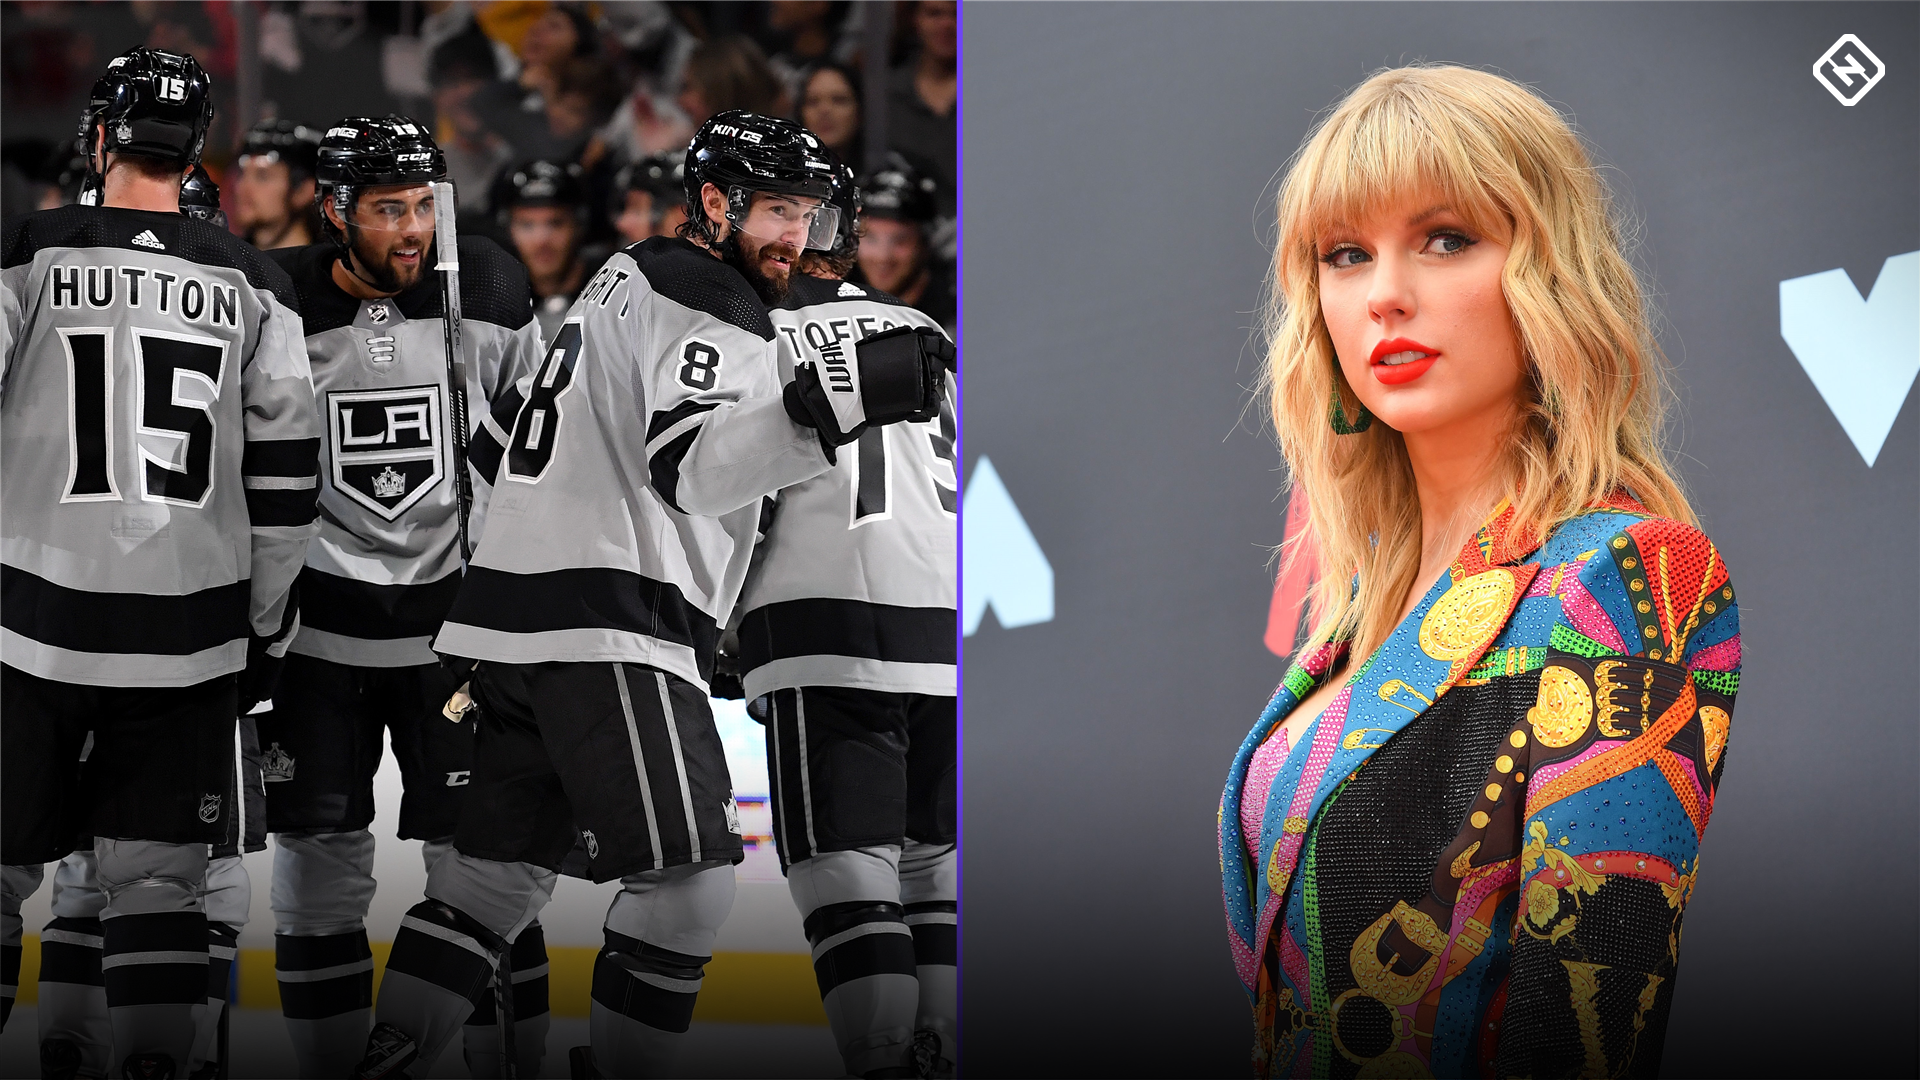 Kings cover up Taylor Swift banner to shake off superstition